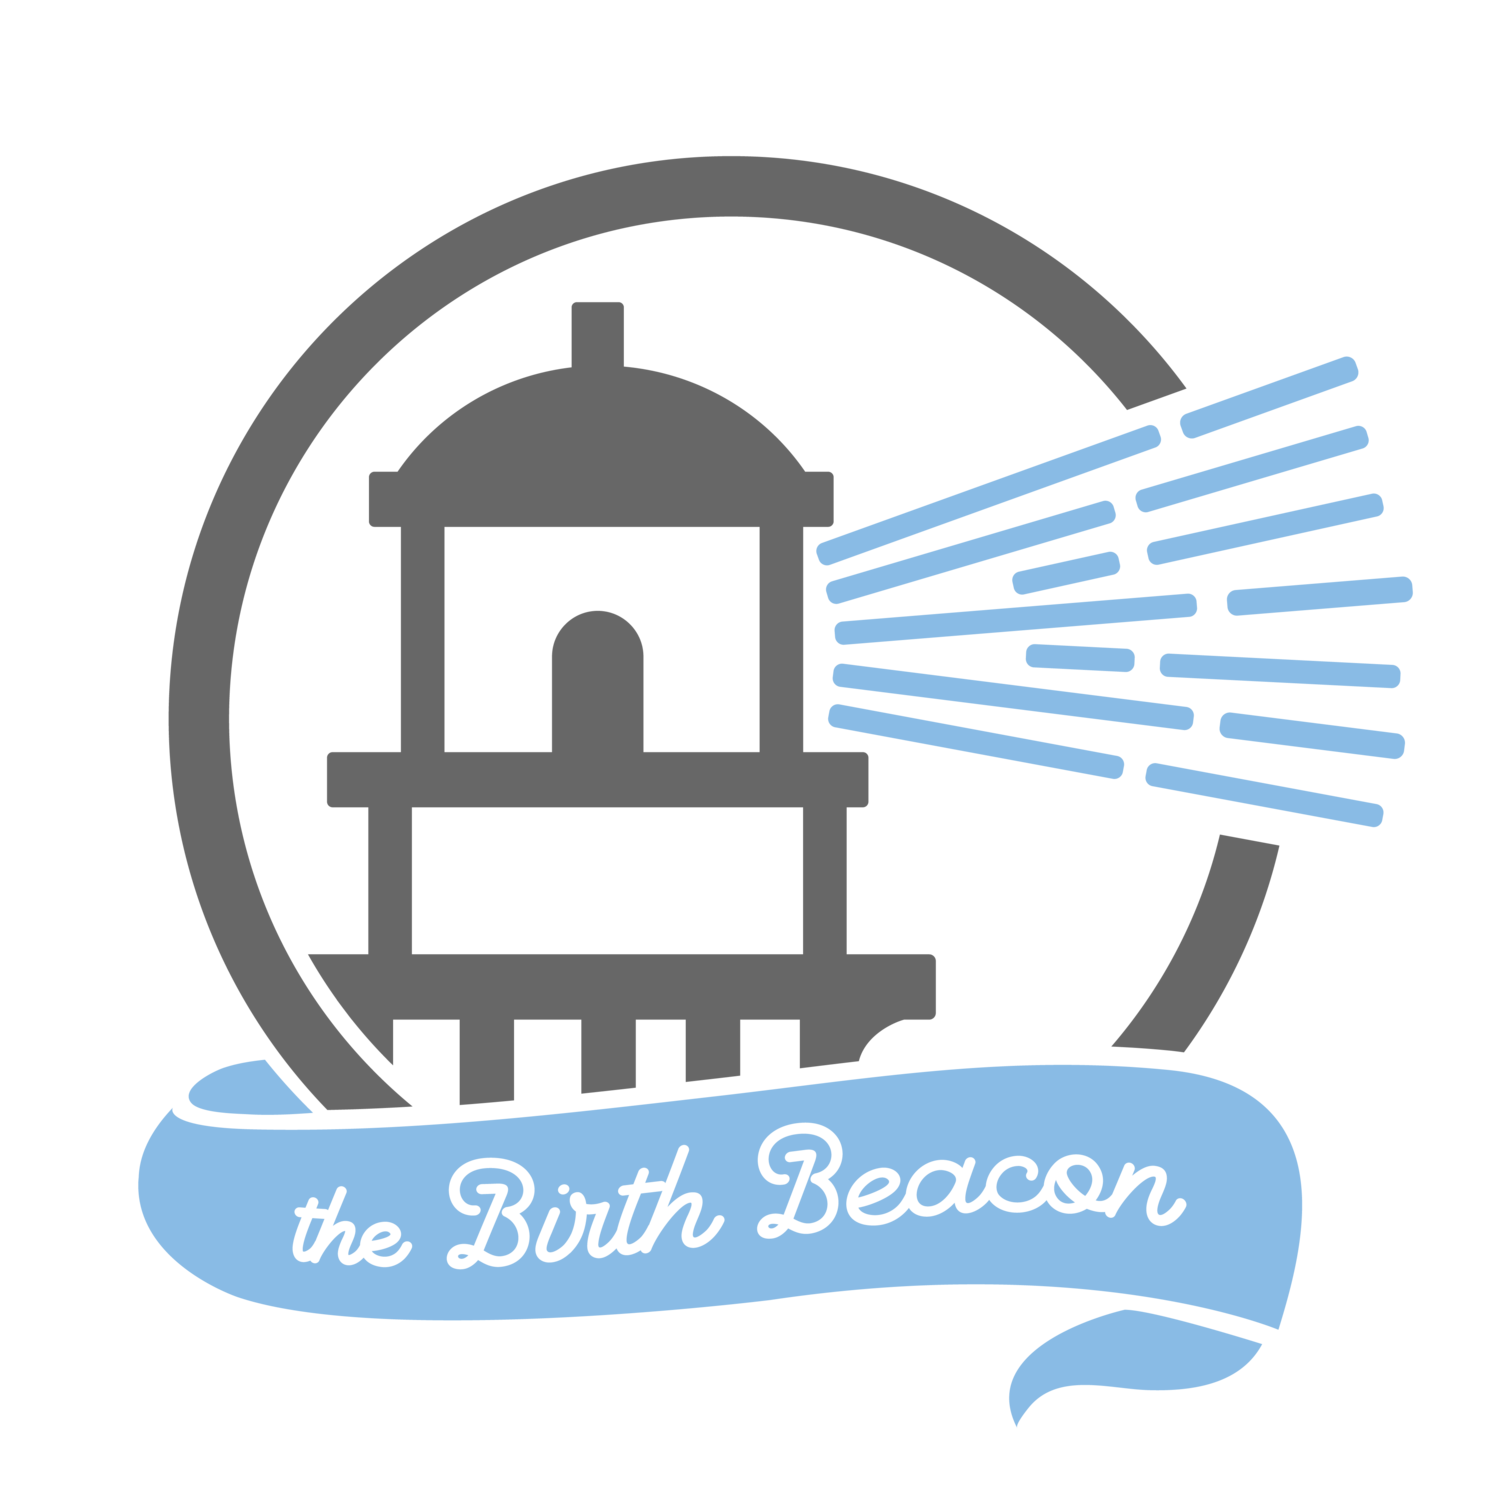 The Birth Beacon